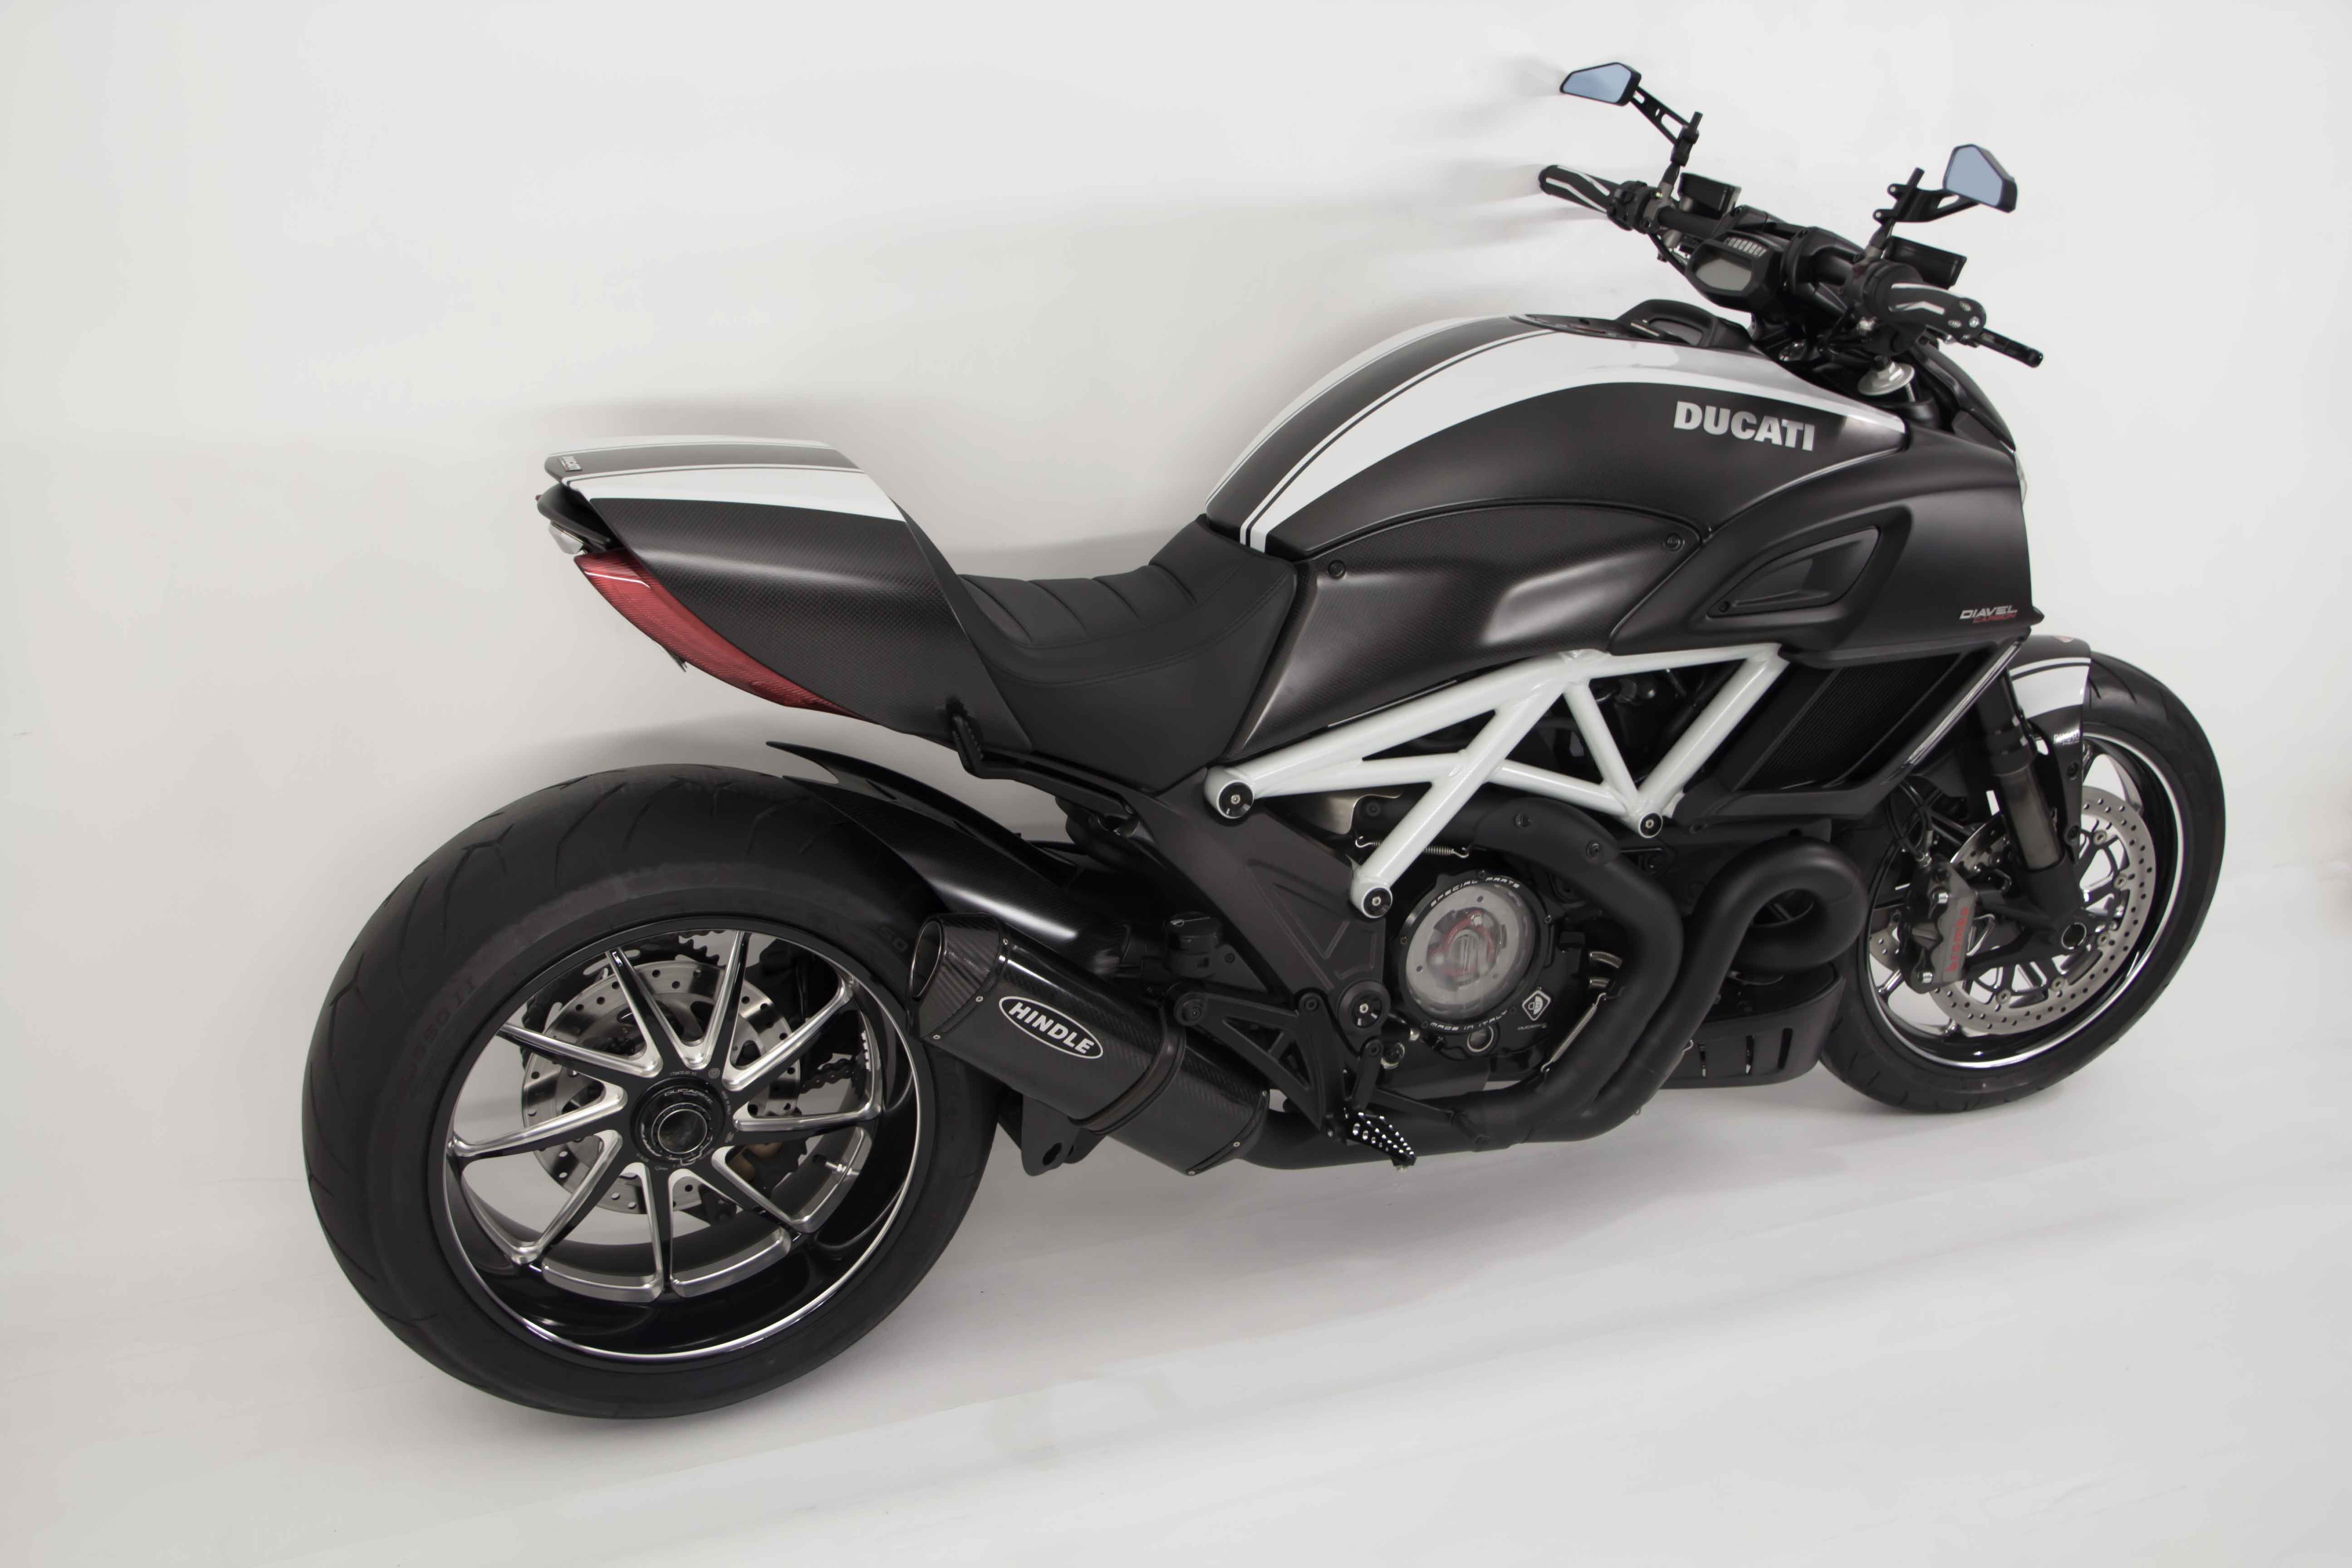 For More Info And To Purchase The Ducati Diavel Hindle Exhaust Slip On Adapter Muffler Check It Out Here